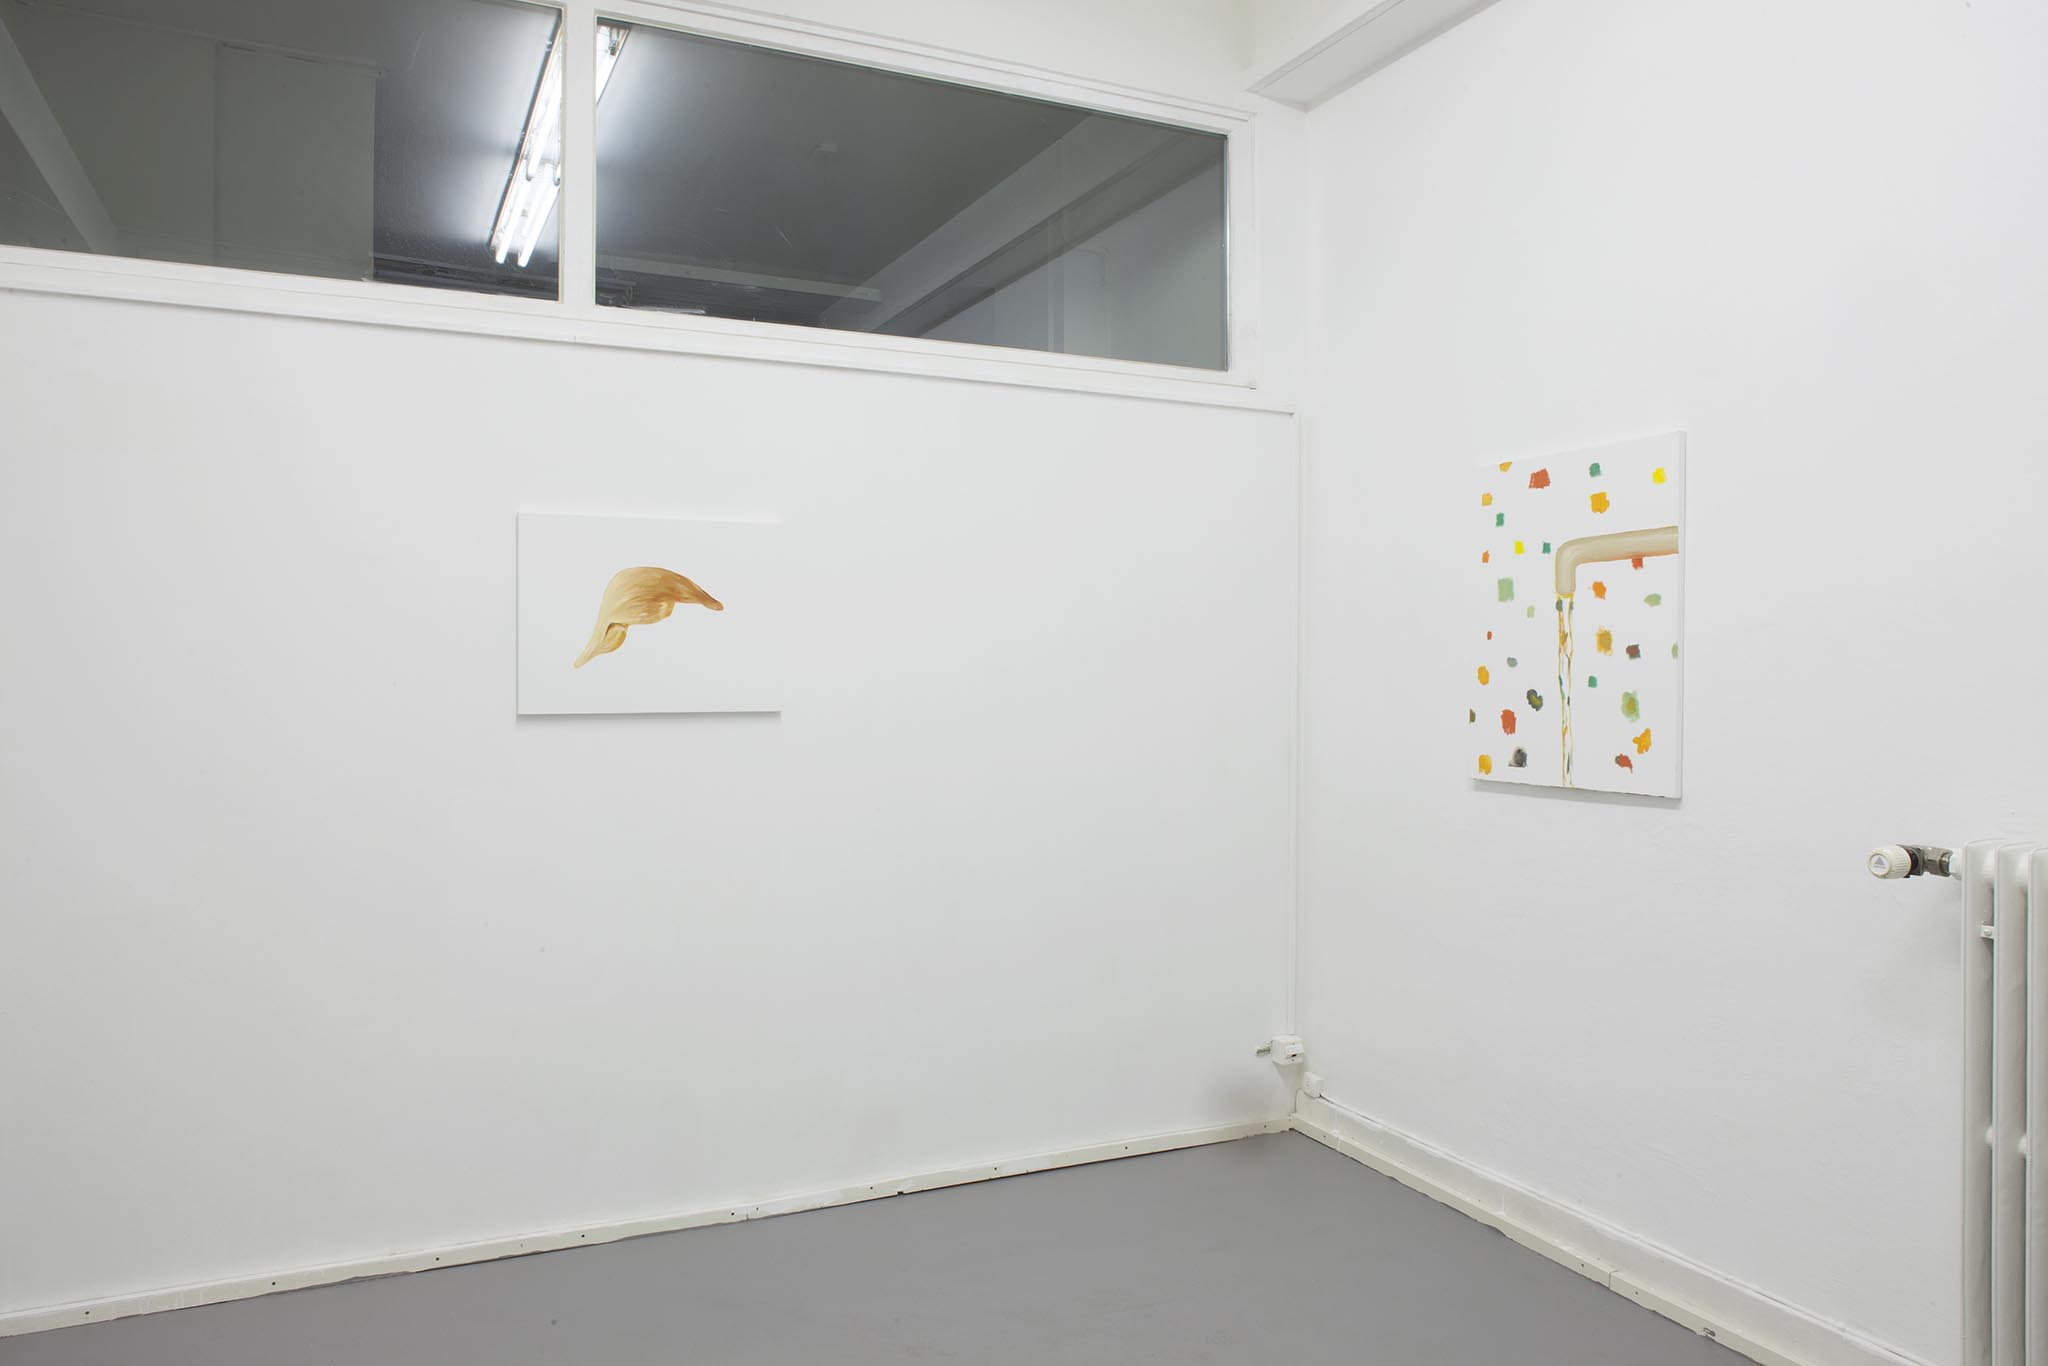 Left: Hans Witschi,  Untitled / Study POTUS (3) , 2017, oil on primed cotton, 45,7 x 61 cm Right: Hans Witschi,  Untitled (Water) , 2017, oil on primed cotton, 76 x 61 cm Photo: Christoph Oeschger